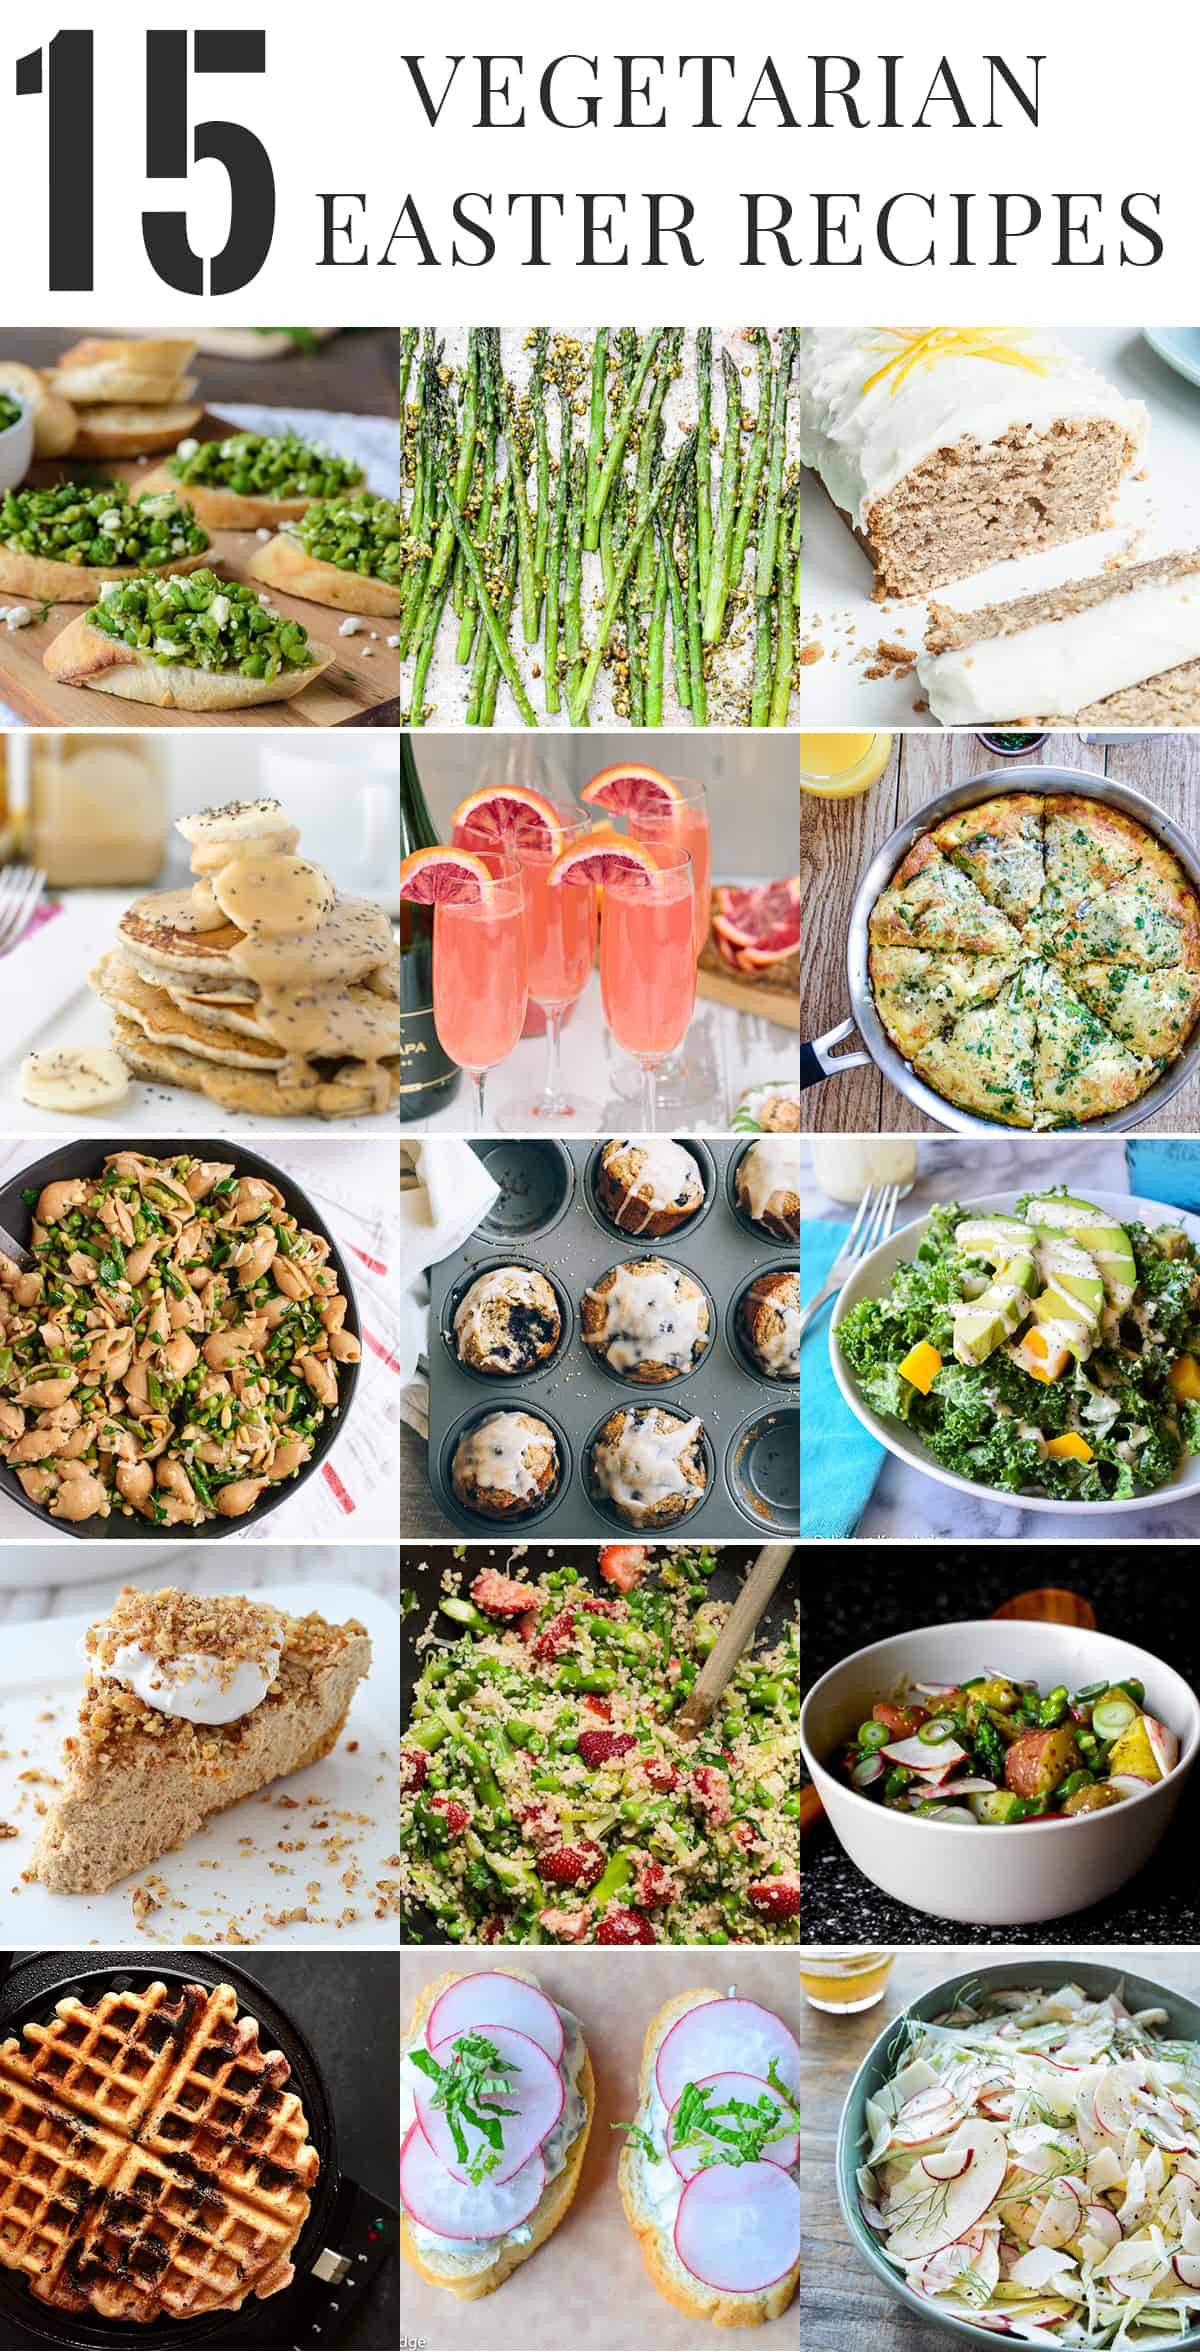 Vegetarian Easter Dinner Ideas  Healthy Ve arian Easter Recipes Delish Knowledge